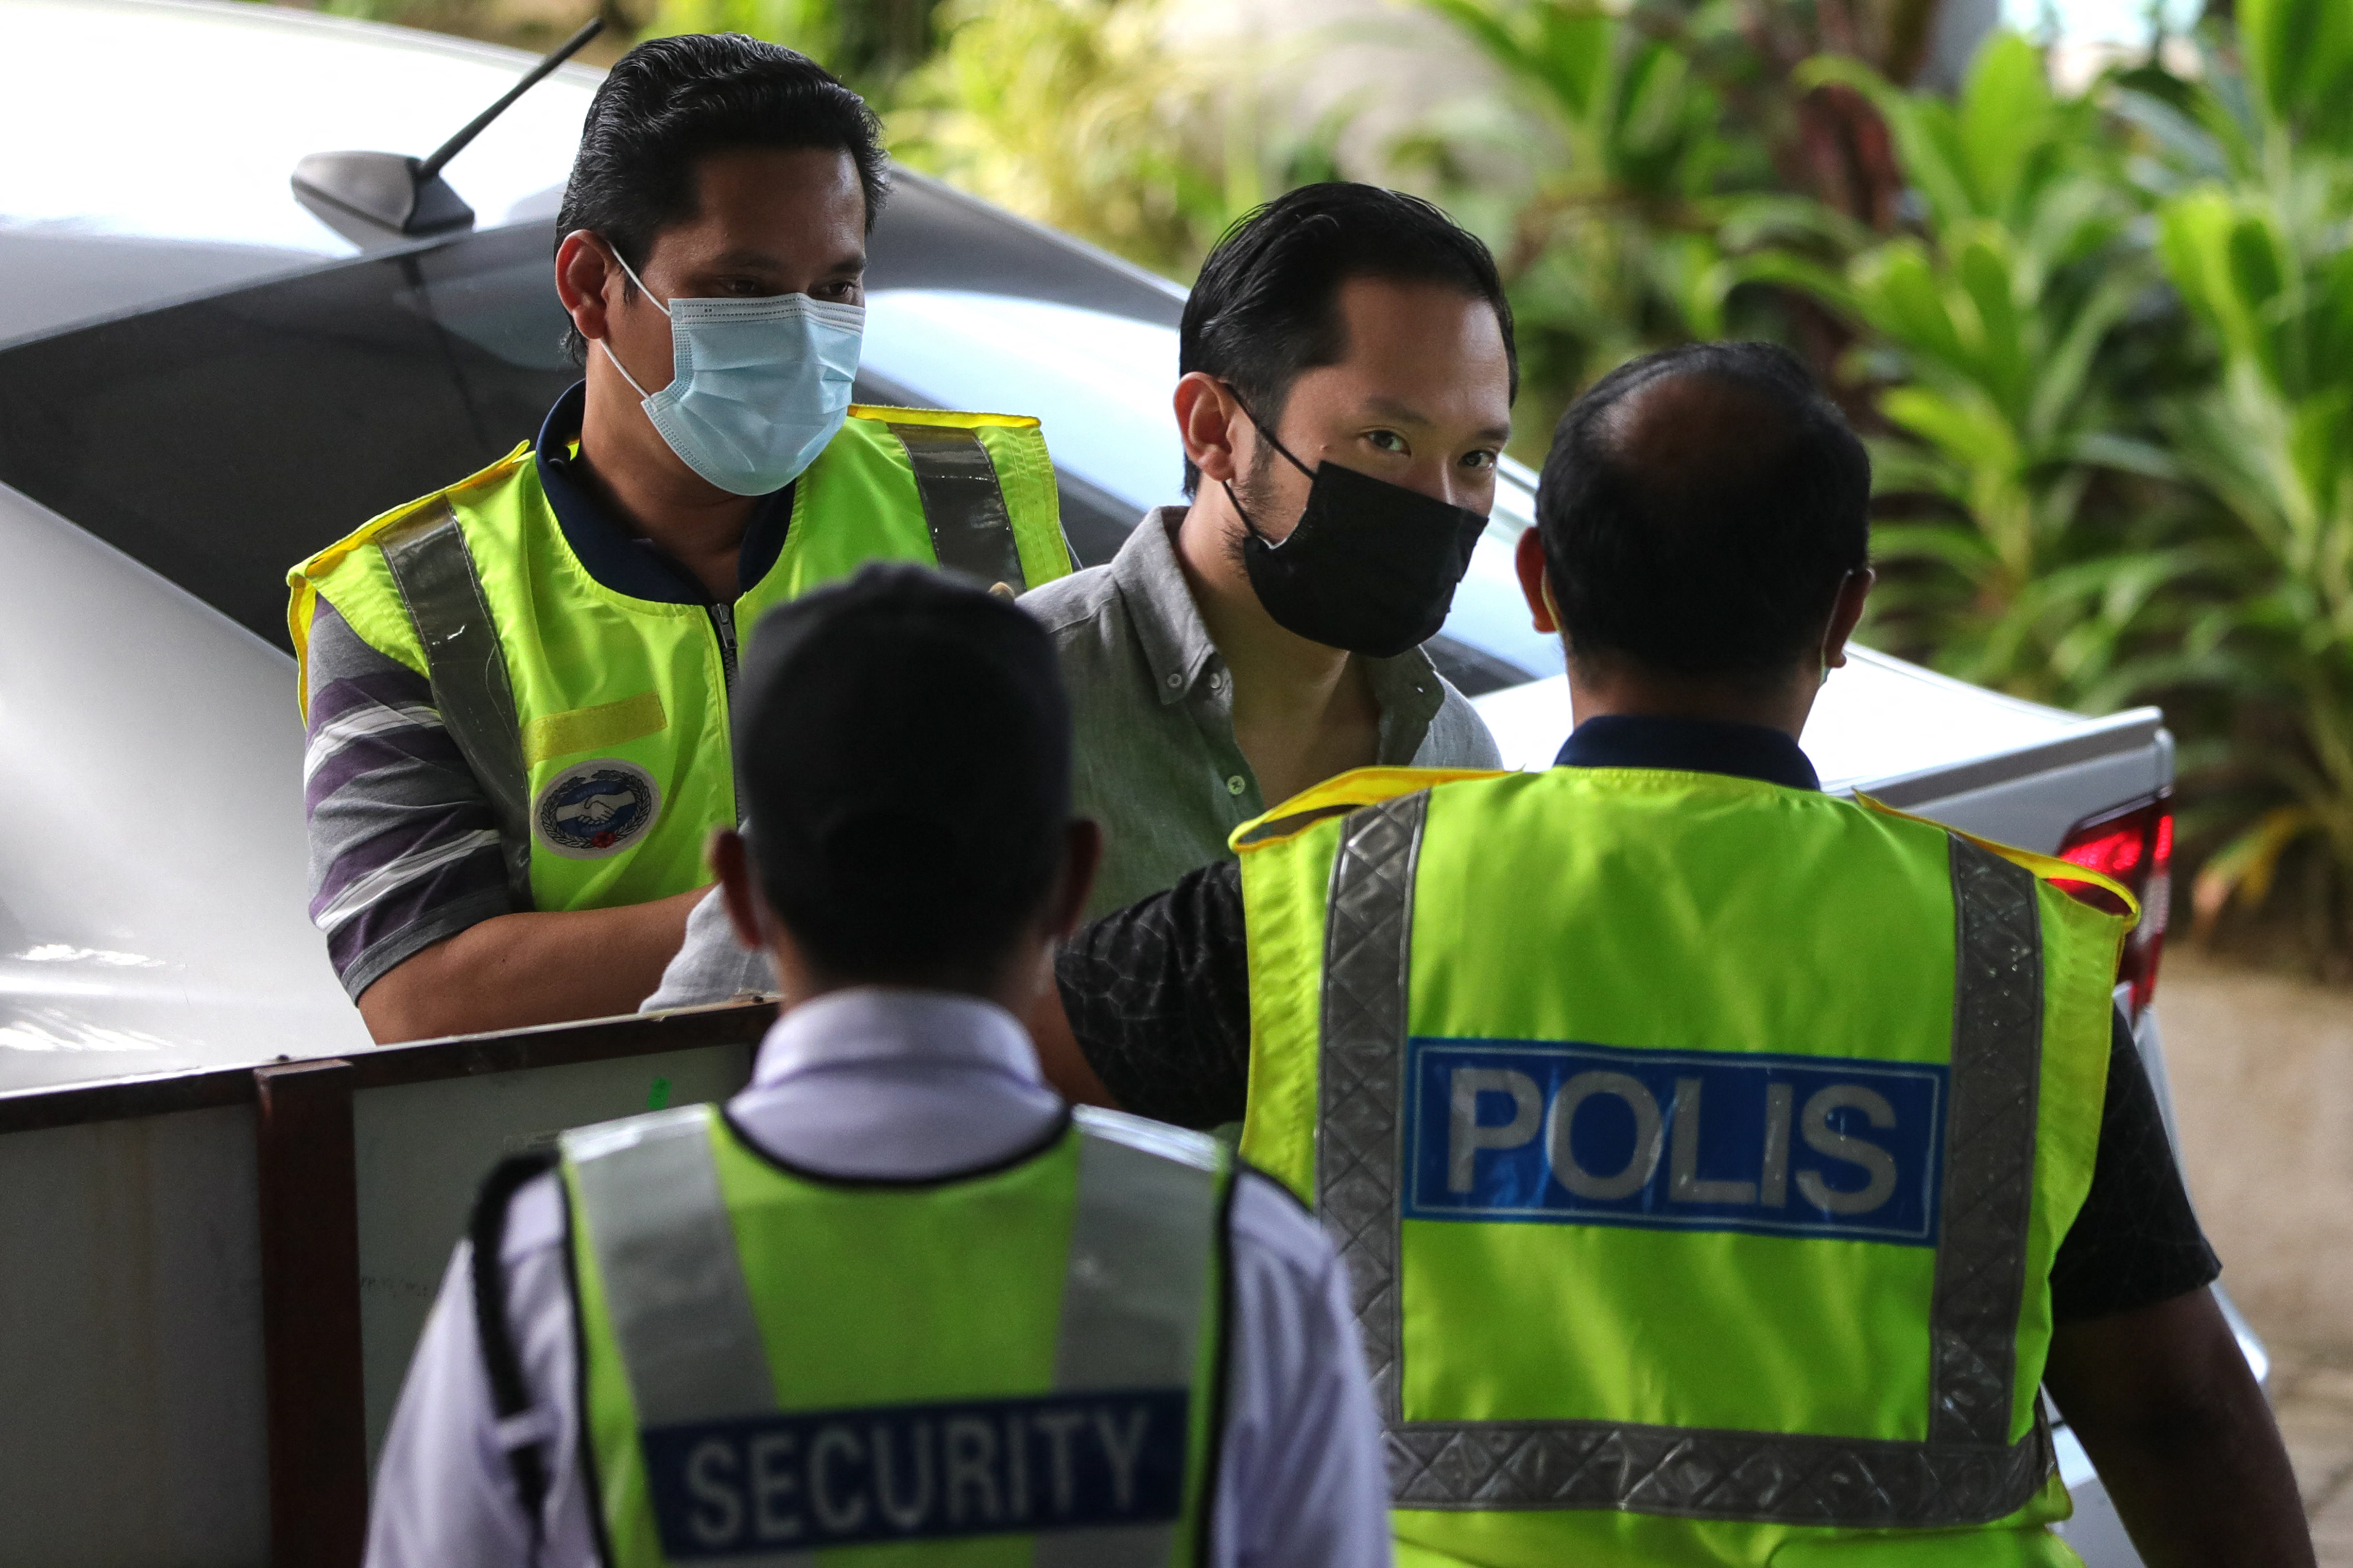 Sugarbook founder Darren Chan arrives at court in Malaysia. Photo: FAHMI DAUD / AFP